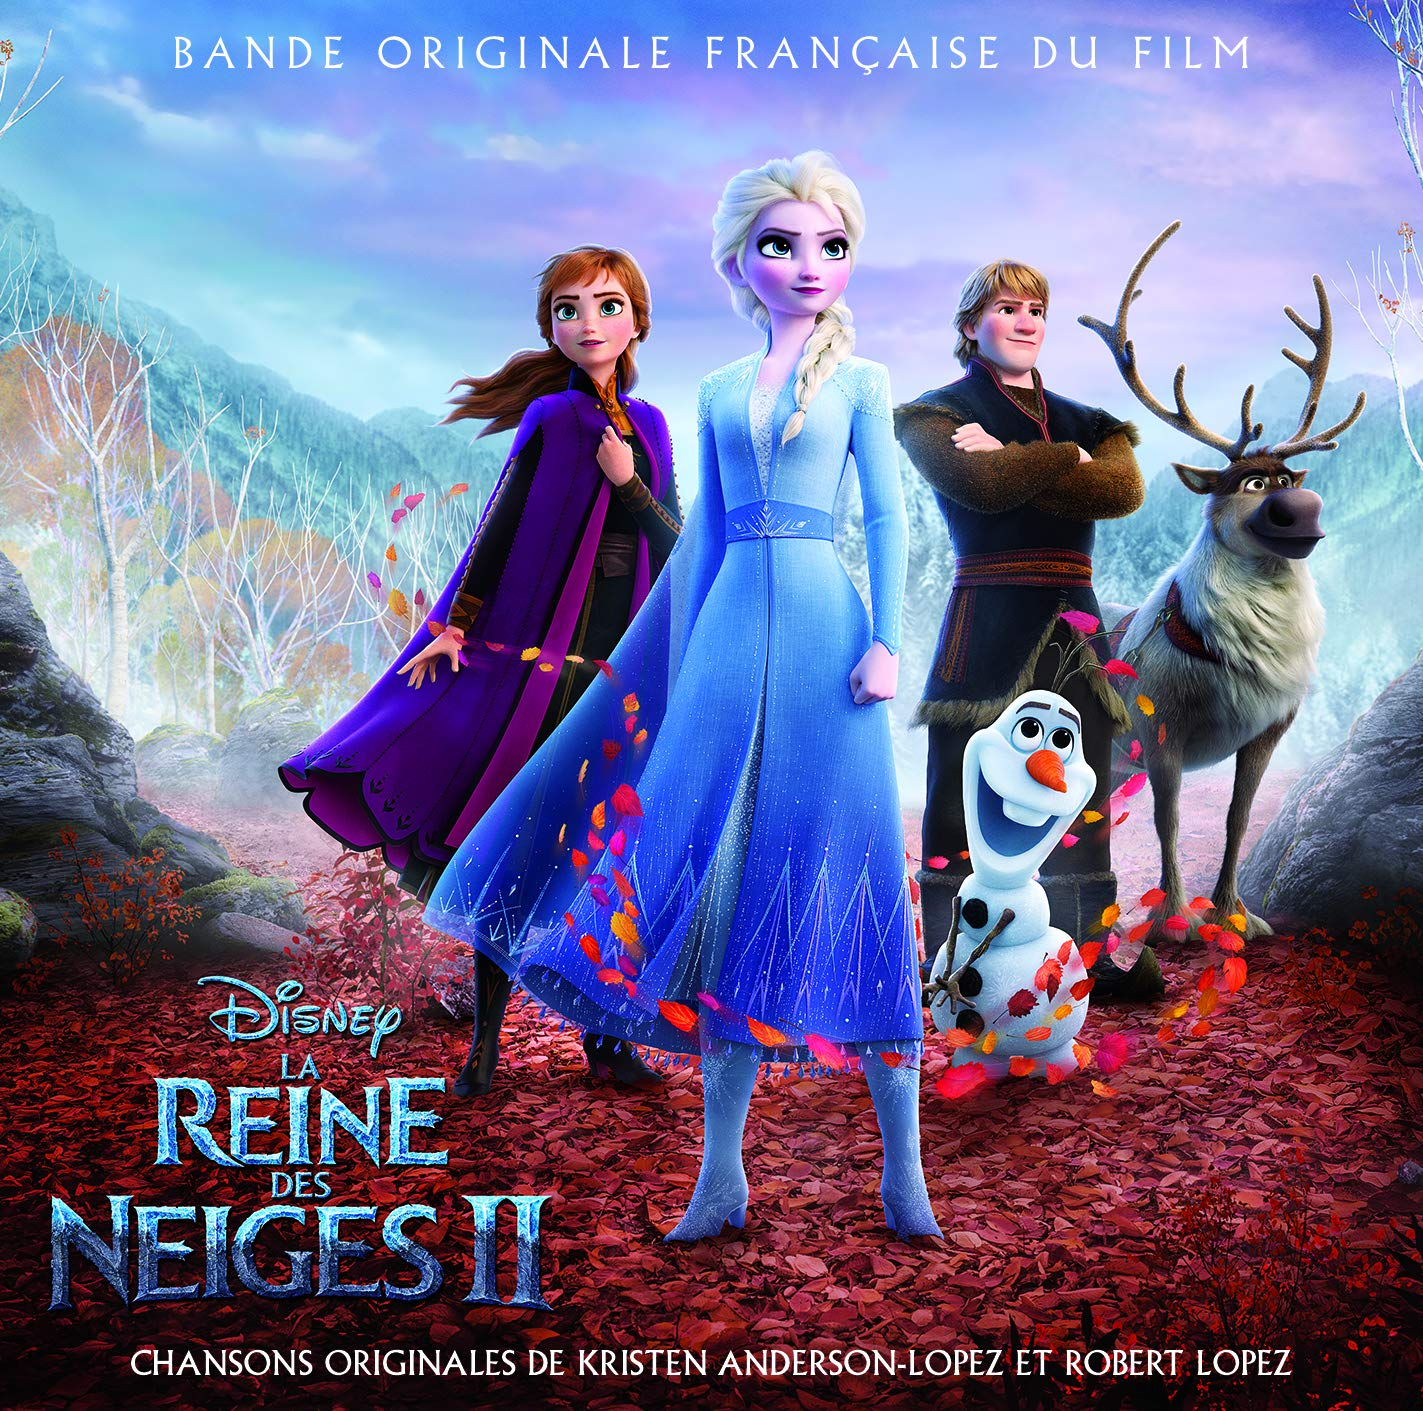 bande originale soundtrack ost score reine neiges 2 frozen disney